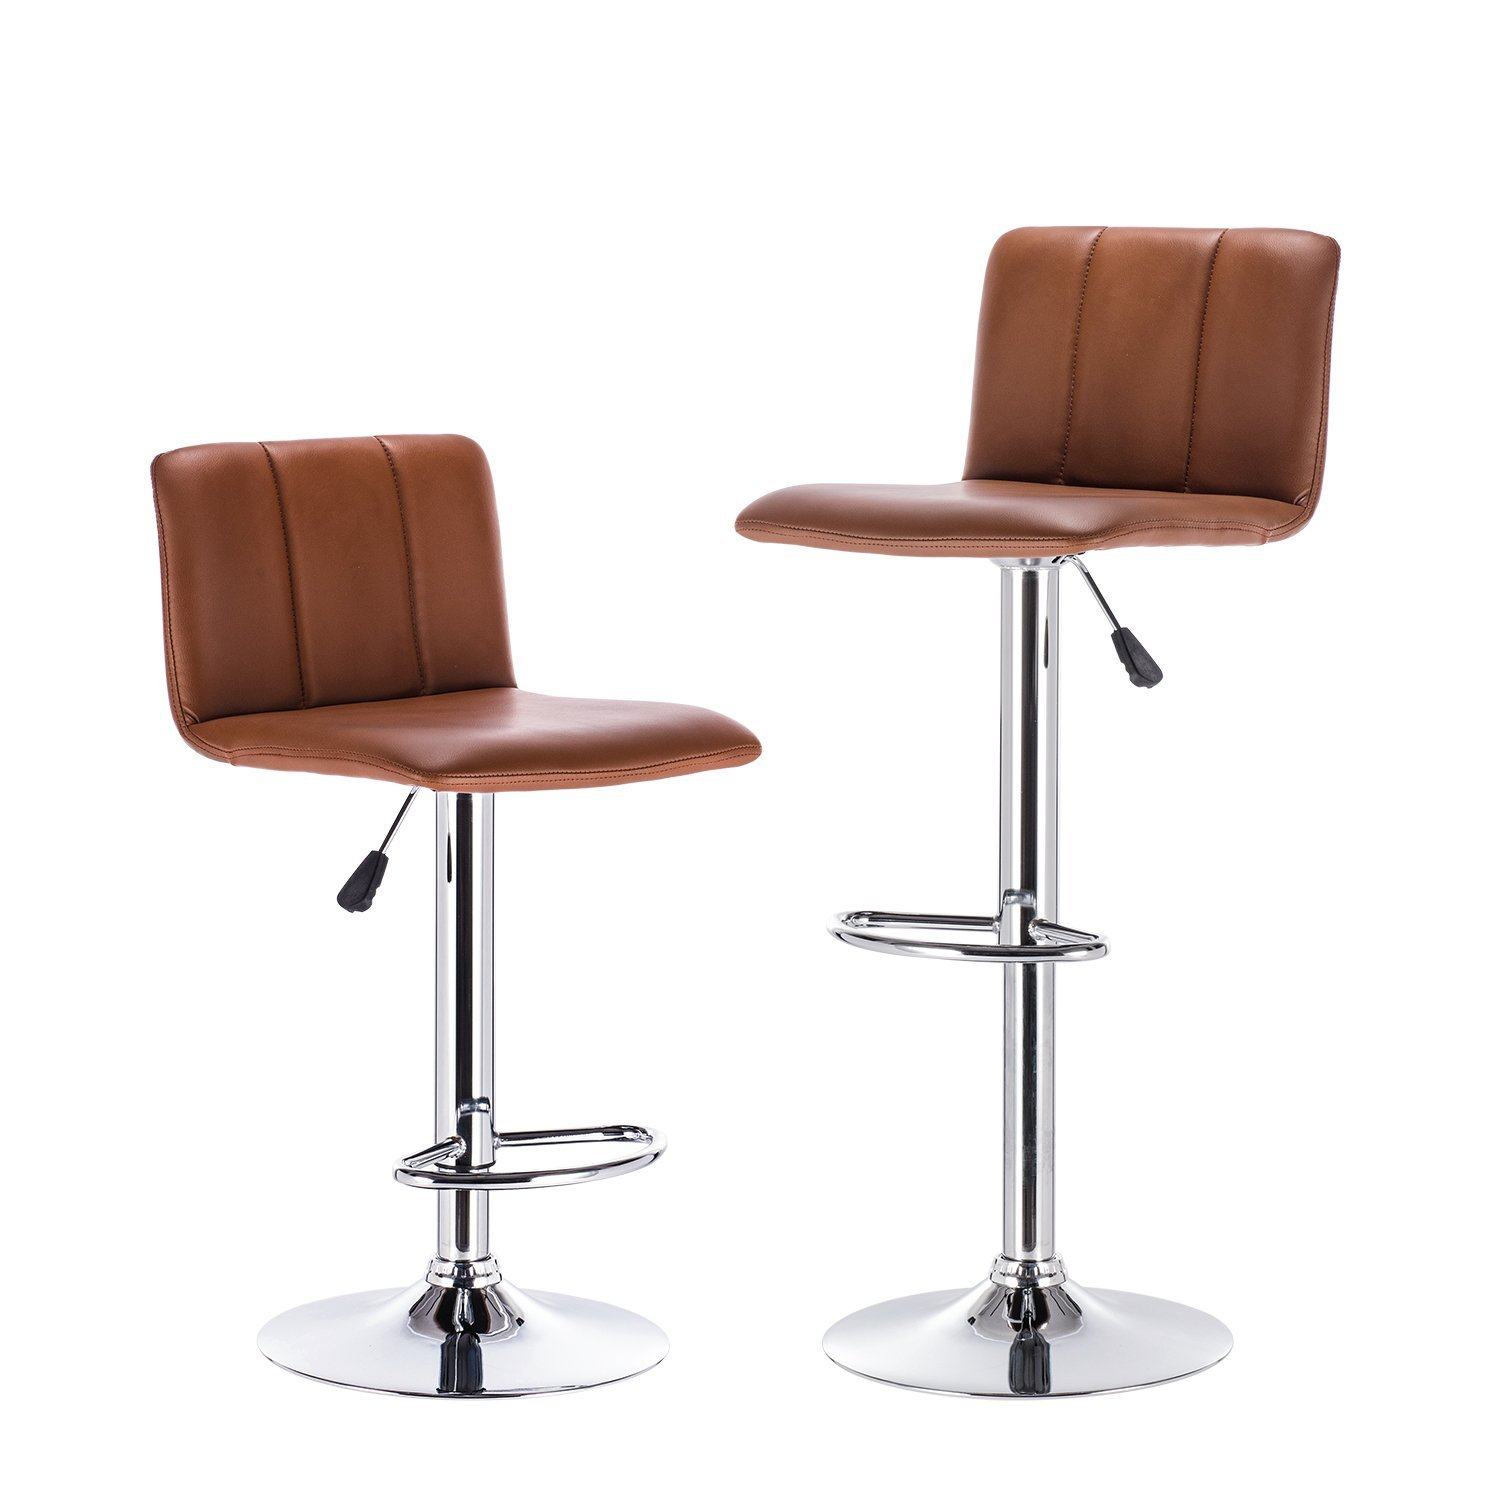 LCH Bar Stools, Leather Adjustable Bar Stools With Metal Base, Counter  Height Swivel Bar Stool Chairs,Set Of 2 (Brown)